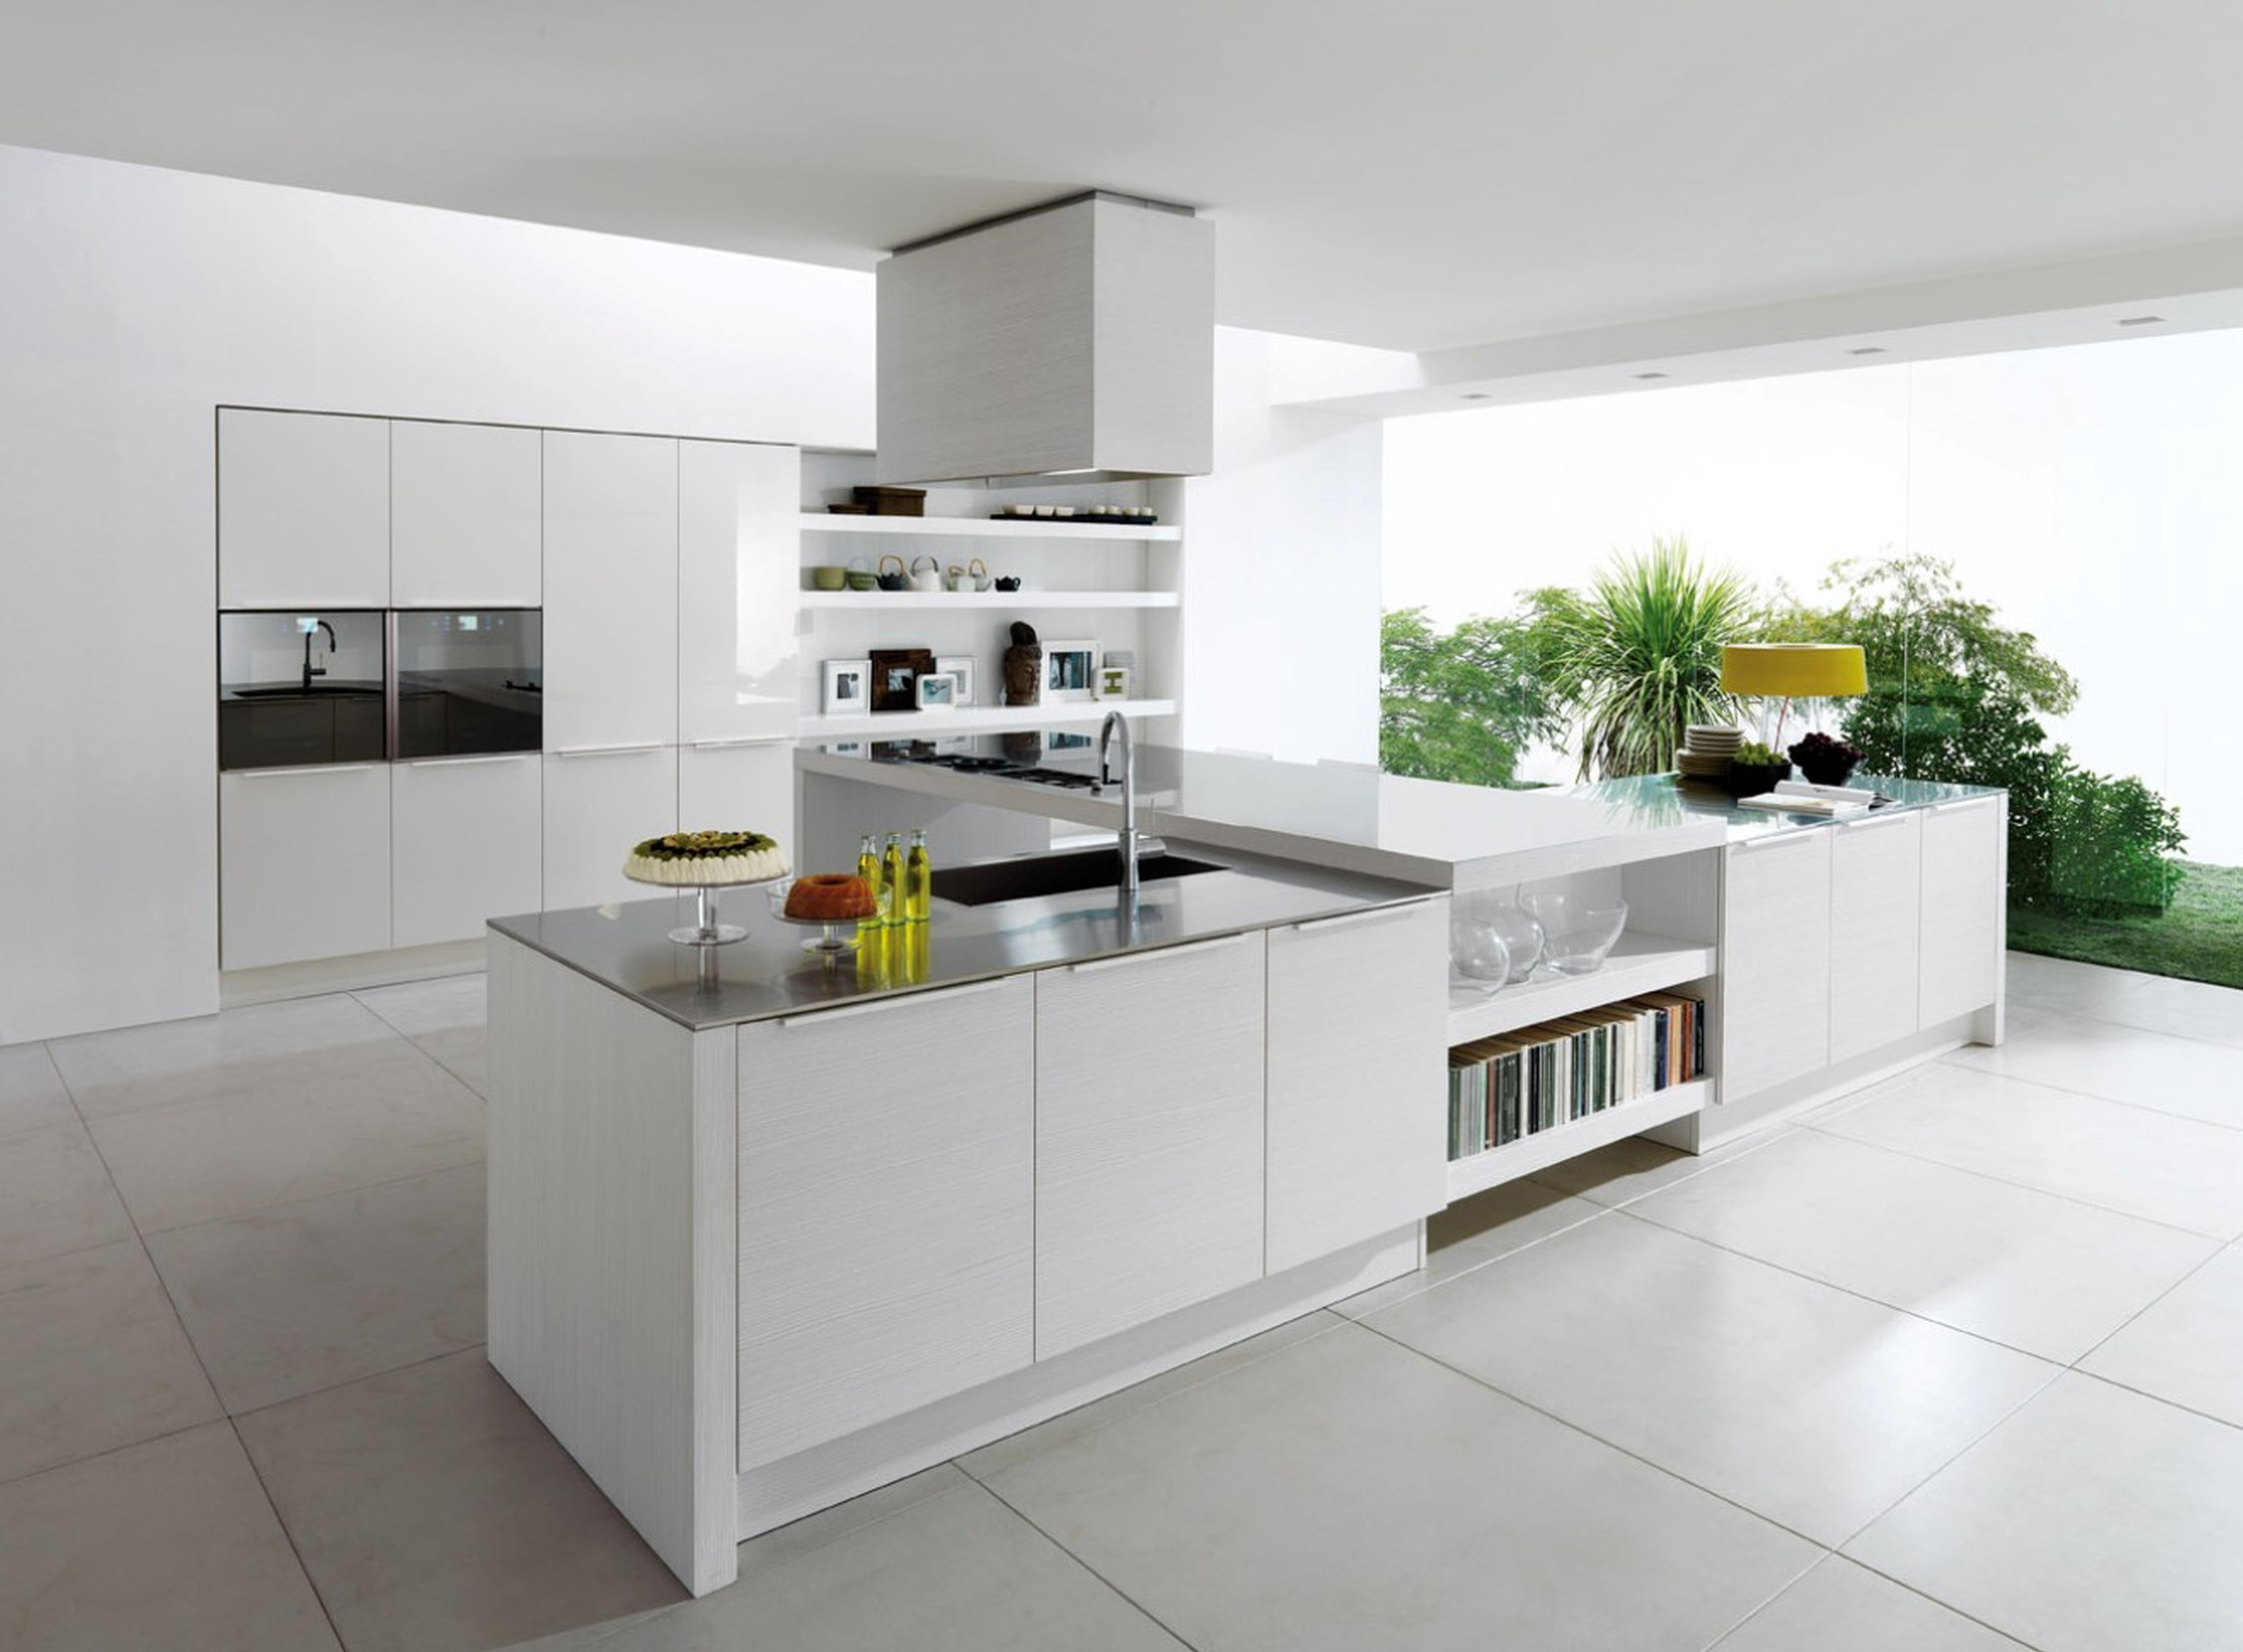 white kitchen cabinet modern for ideas modern kitchen plus large kitchen island white color with kitchen sinks also equipped with shelf cookbook and white marble flooring ideas